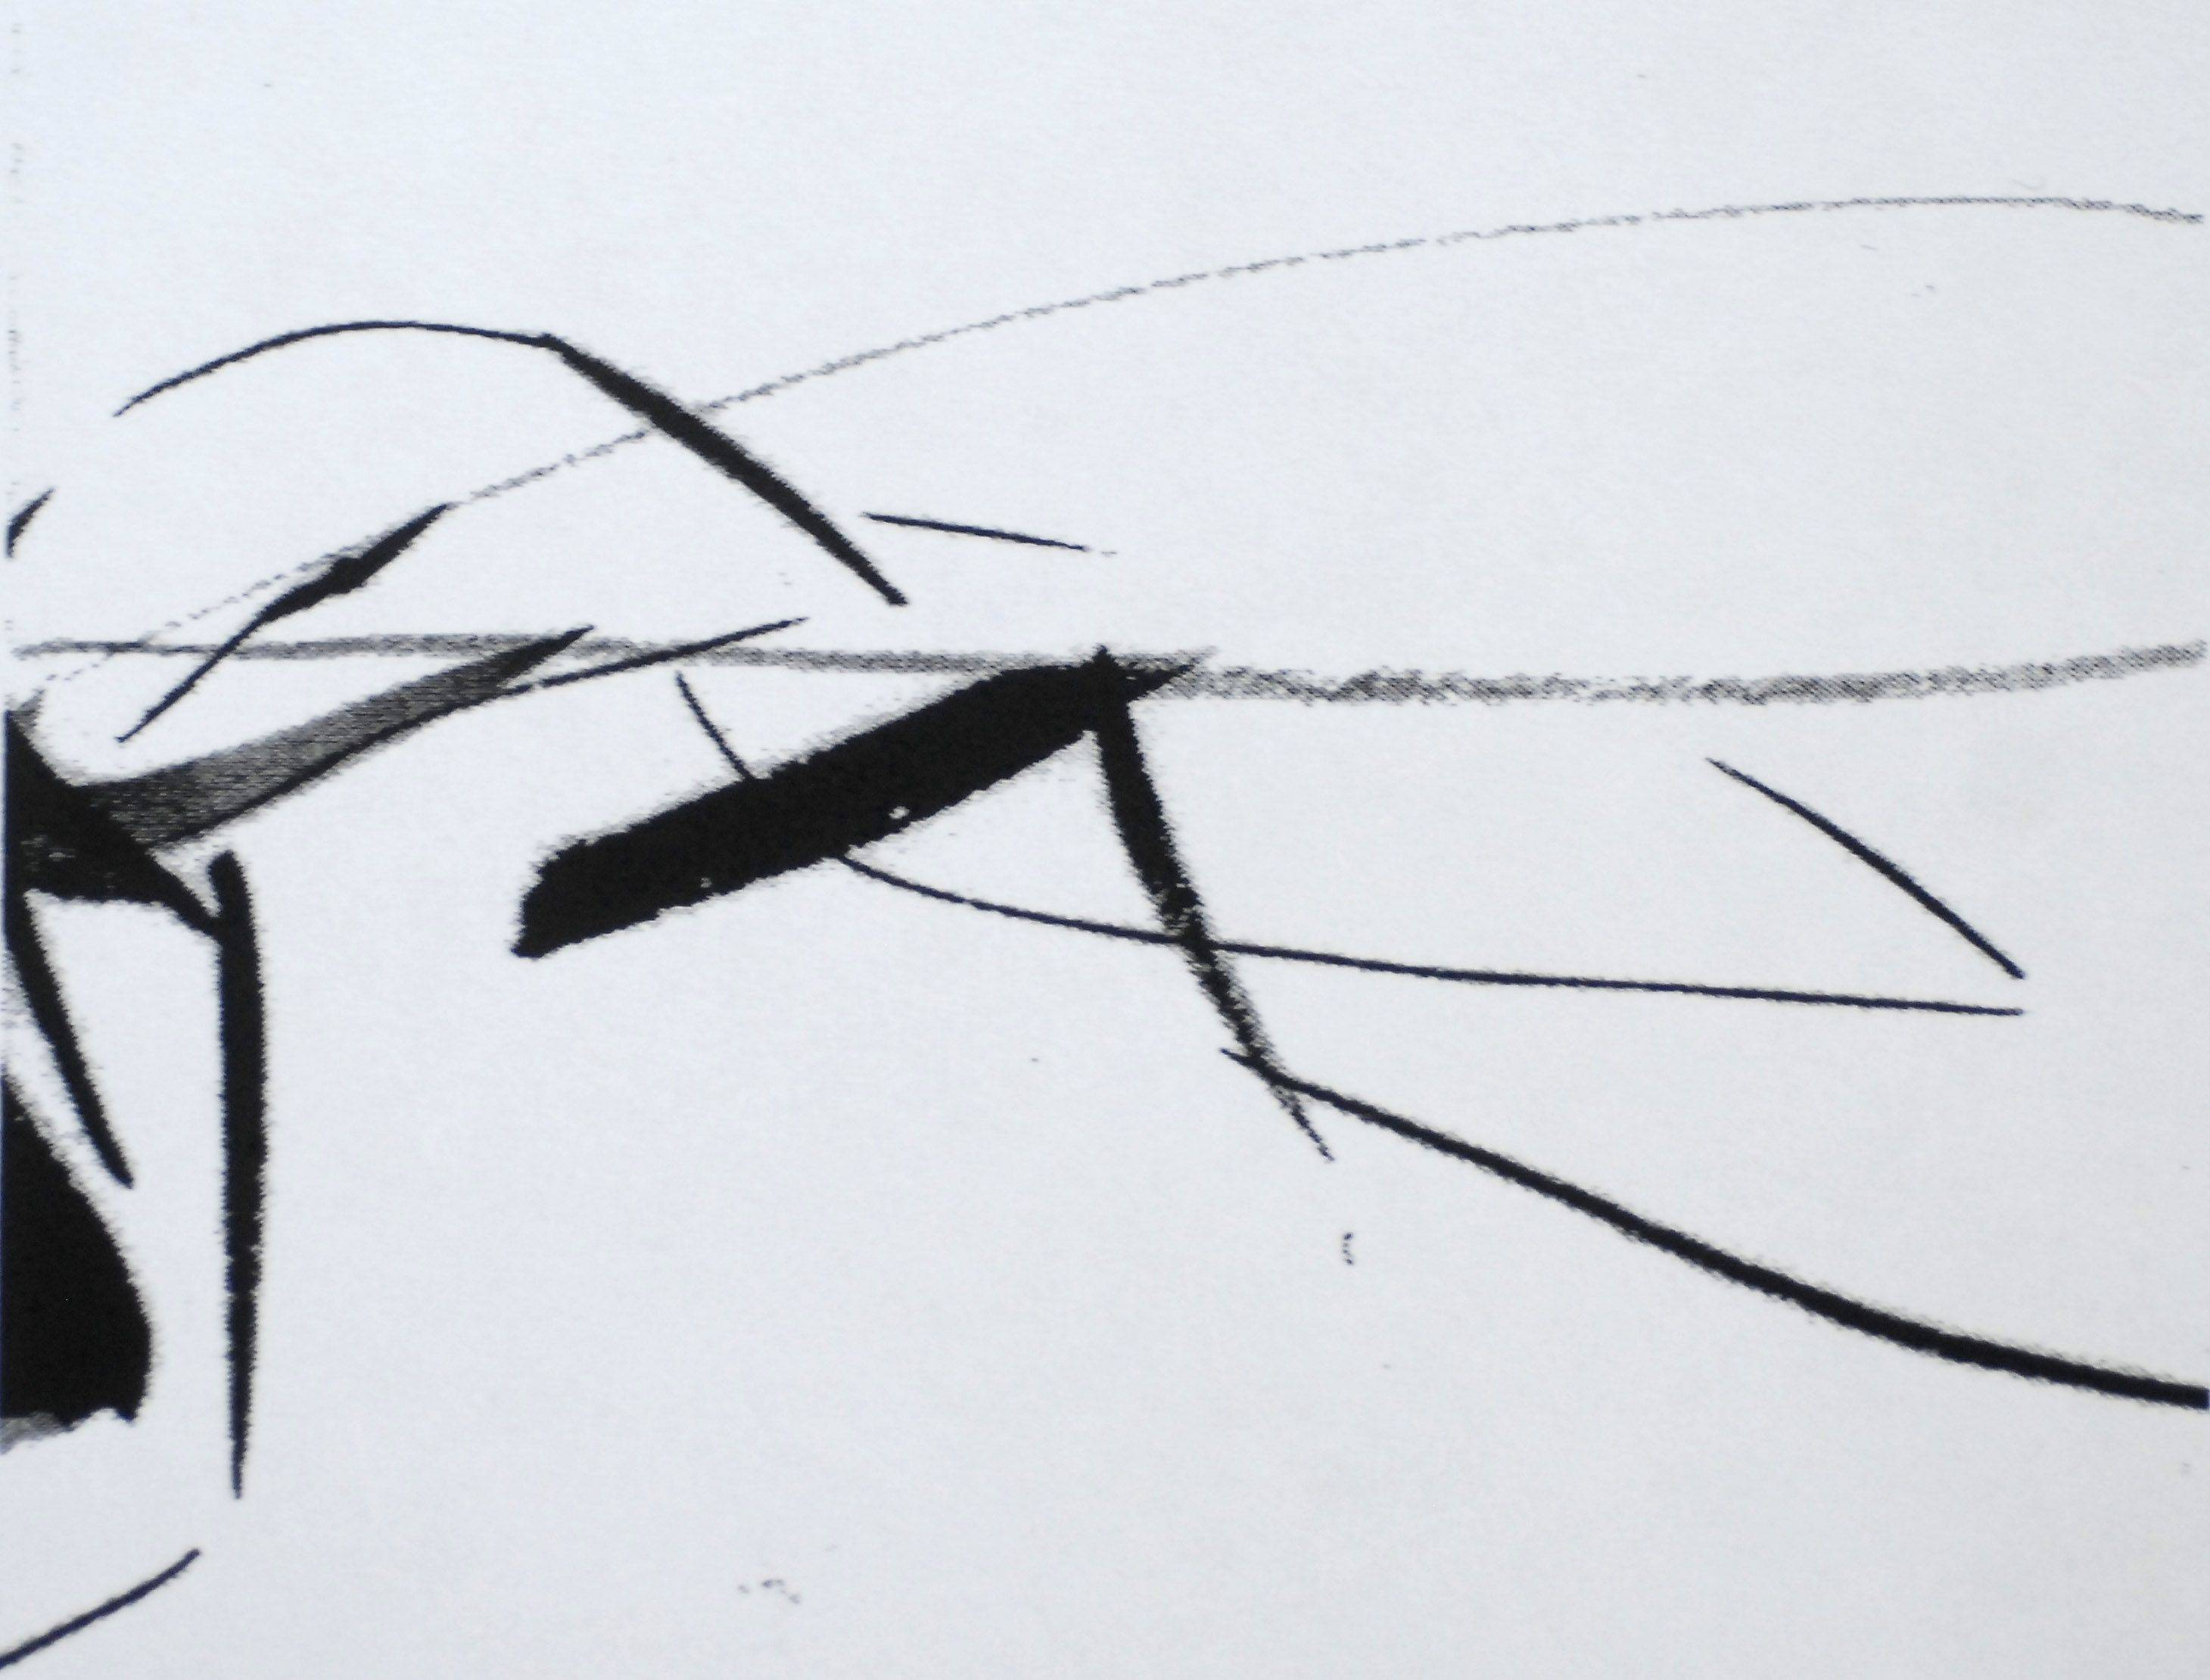 Artist Michael Hopkins of Arlington Heights is getting this drawing from his insect series admitted to the world-renowned Glore Print Study Room in The Jean and Steven Goldman Study Center permanent collection at the Art Institute of Chicago.